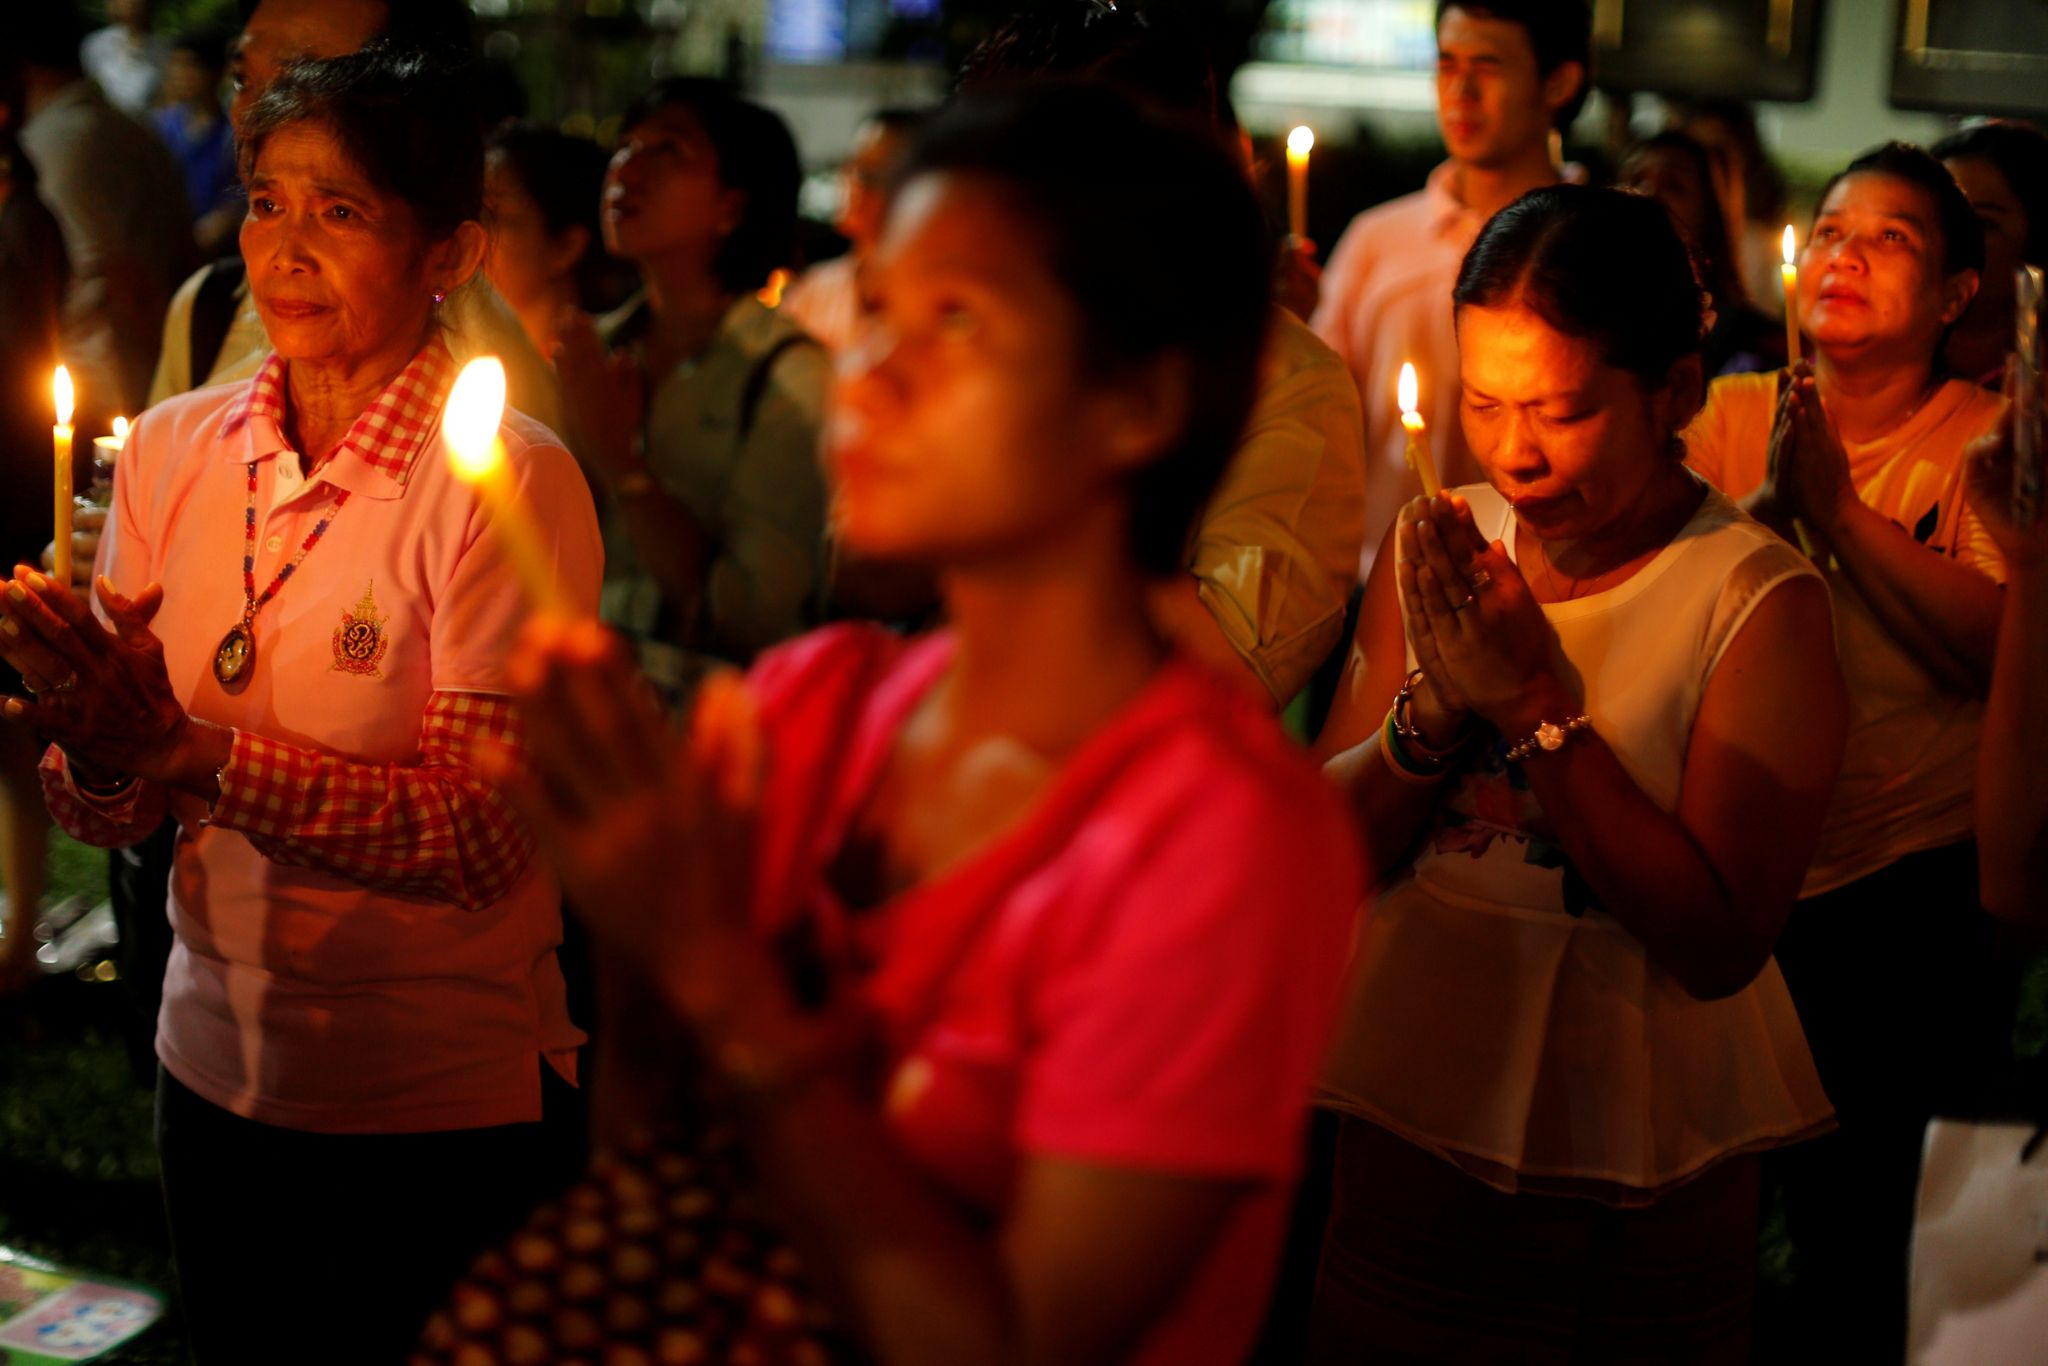 People mourn after an announcement that Thailand's King Bhumibol Adulyadej has died, at the Siriraj hospital in Bangkok, Thailand 13 October 2016.